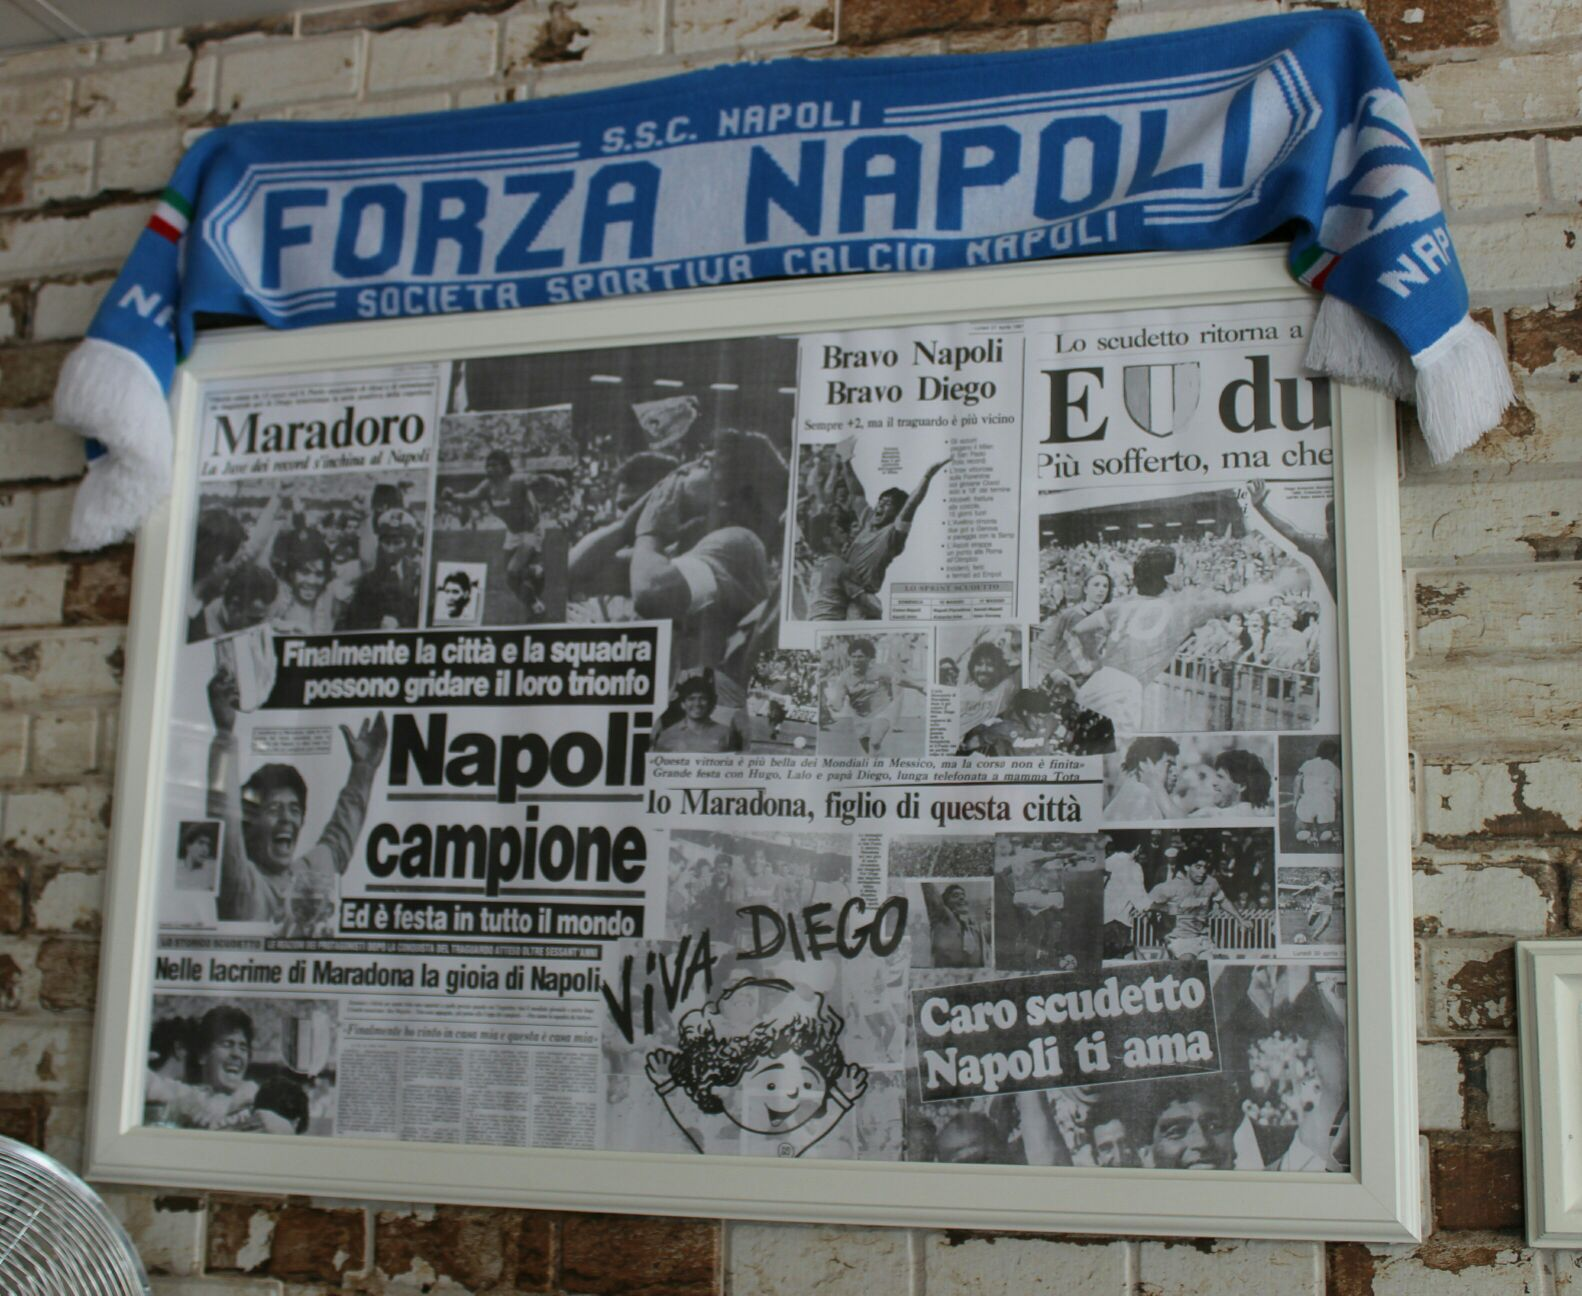 Shrine to Napoli and Maradona